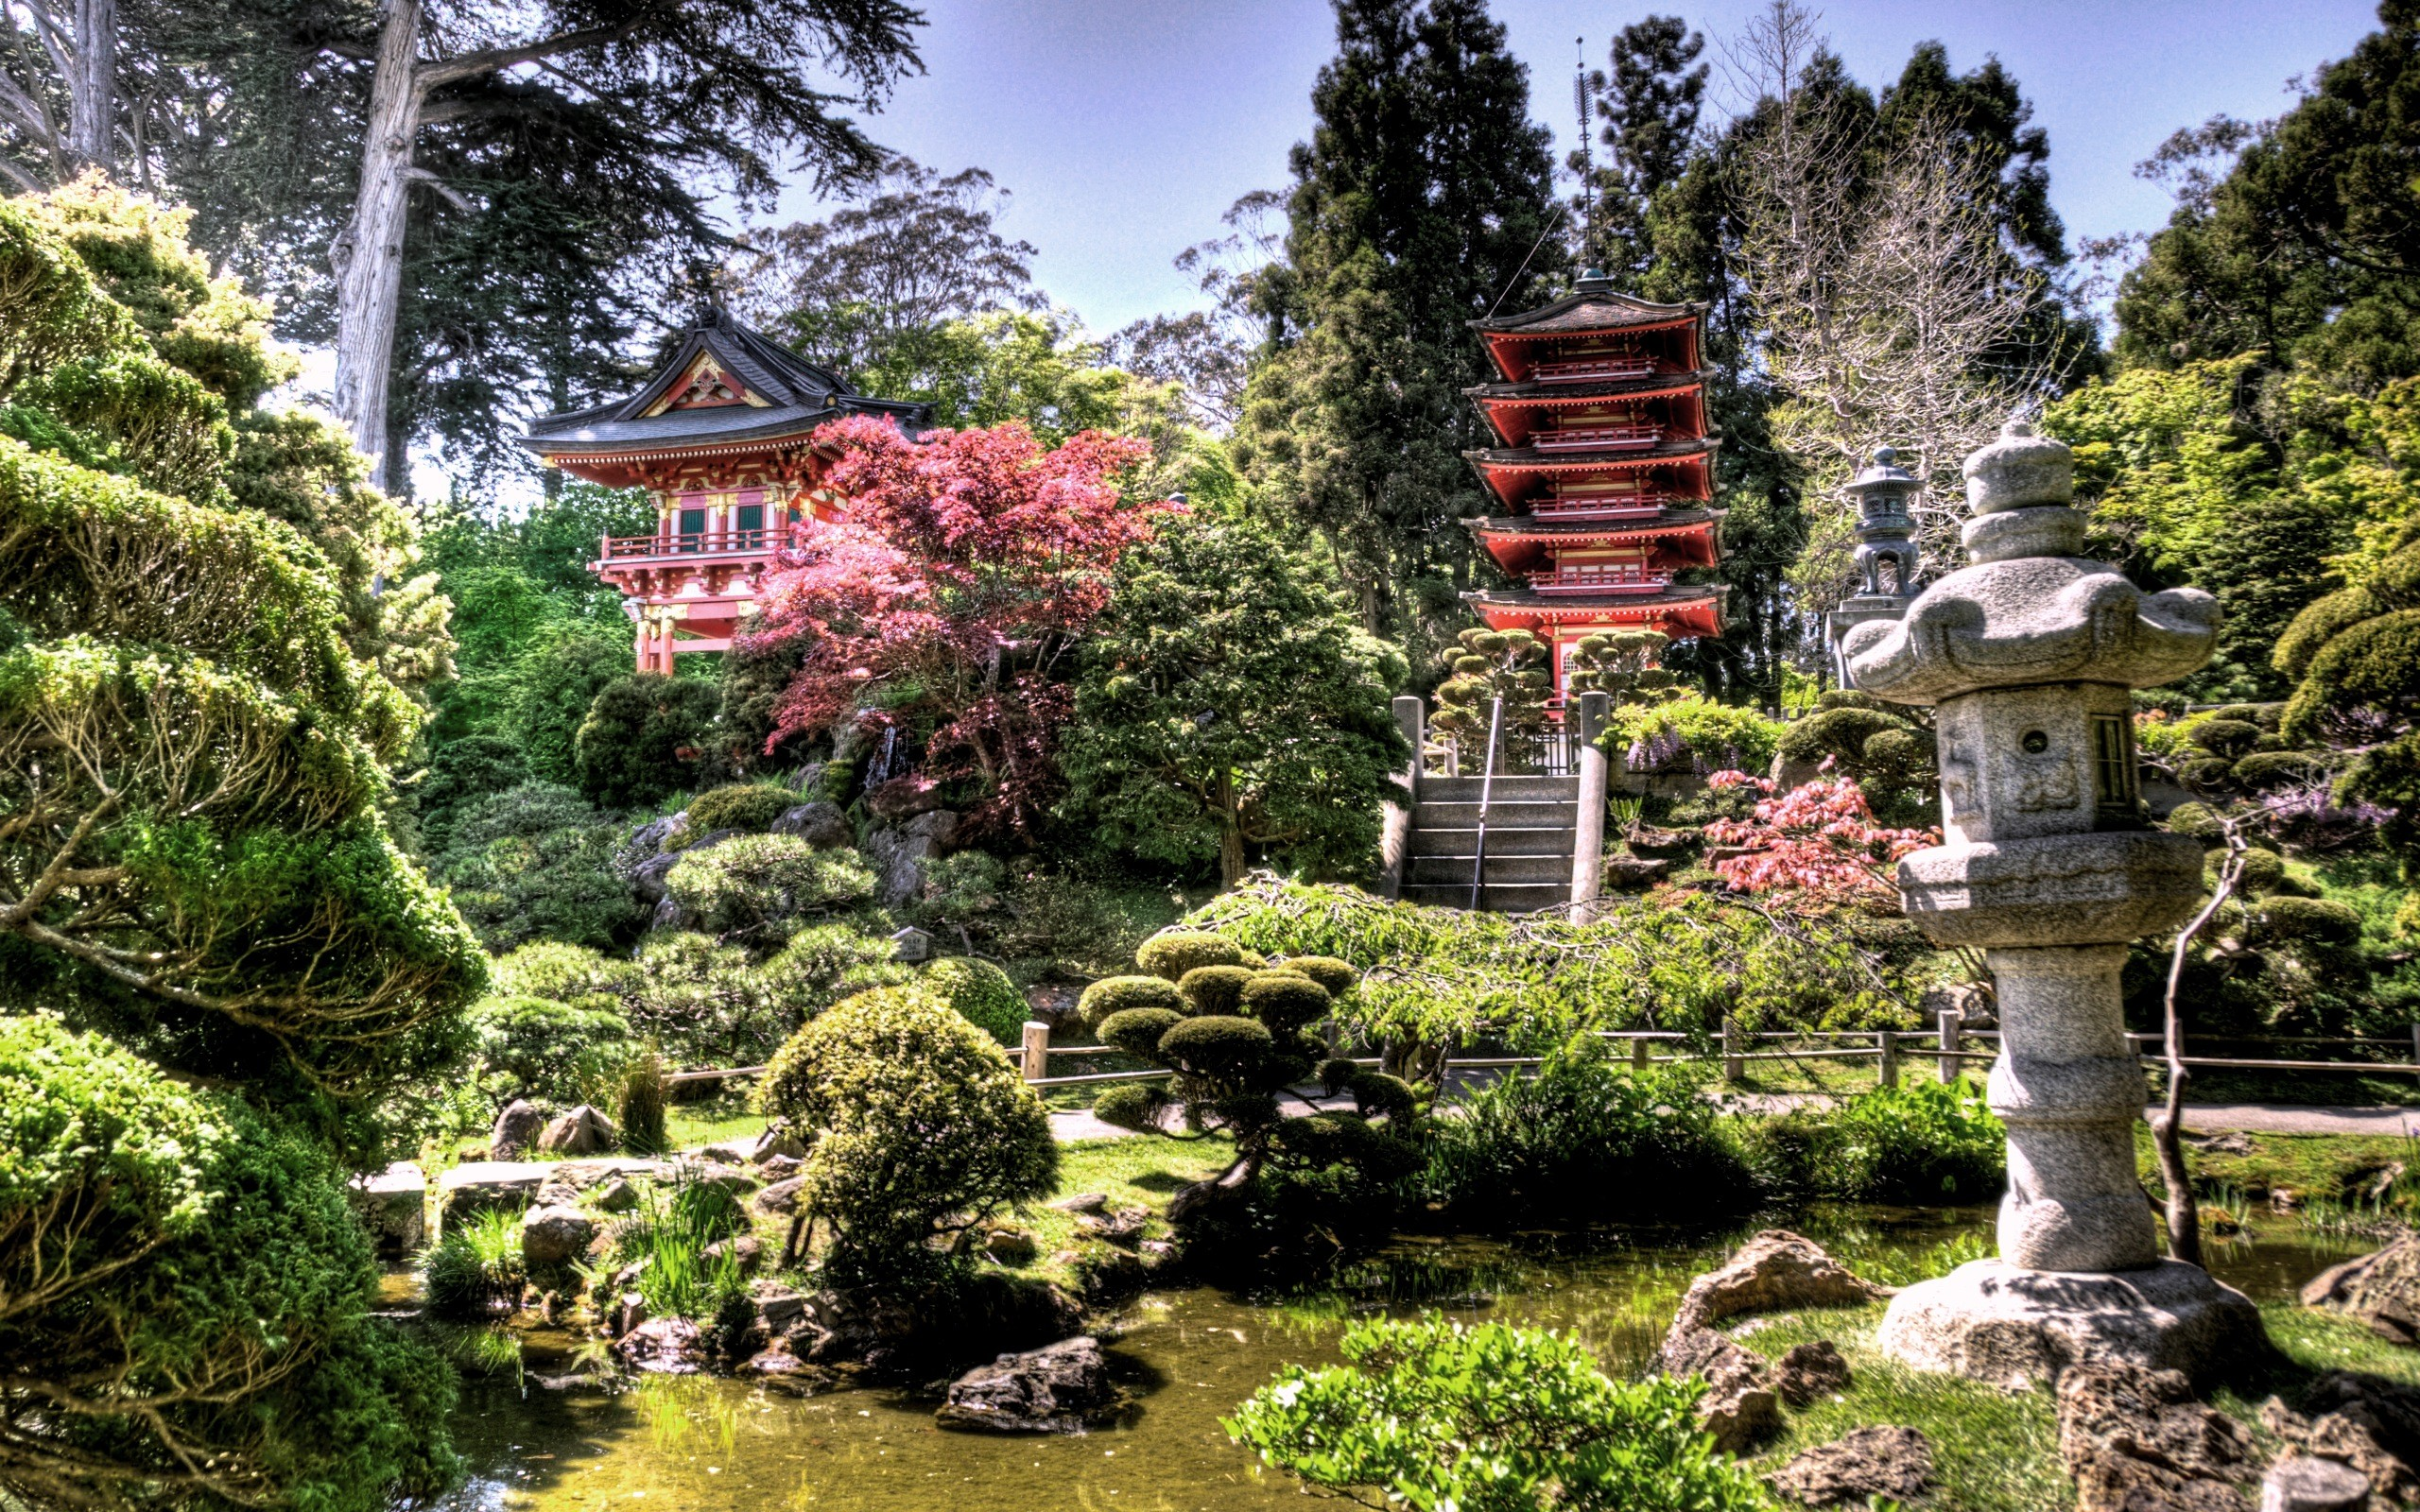 Japanese Garden Wallpapers: Japanese Garden Desktop Wallpaper ·① WallpaperTag